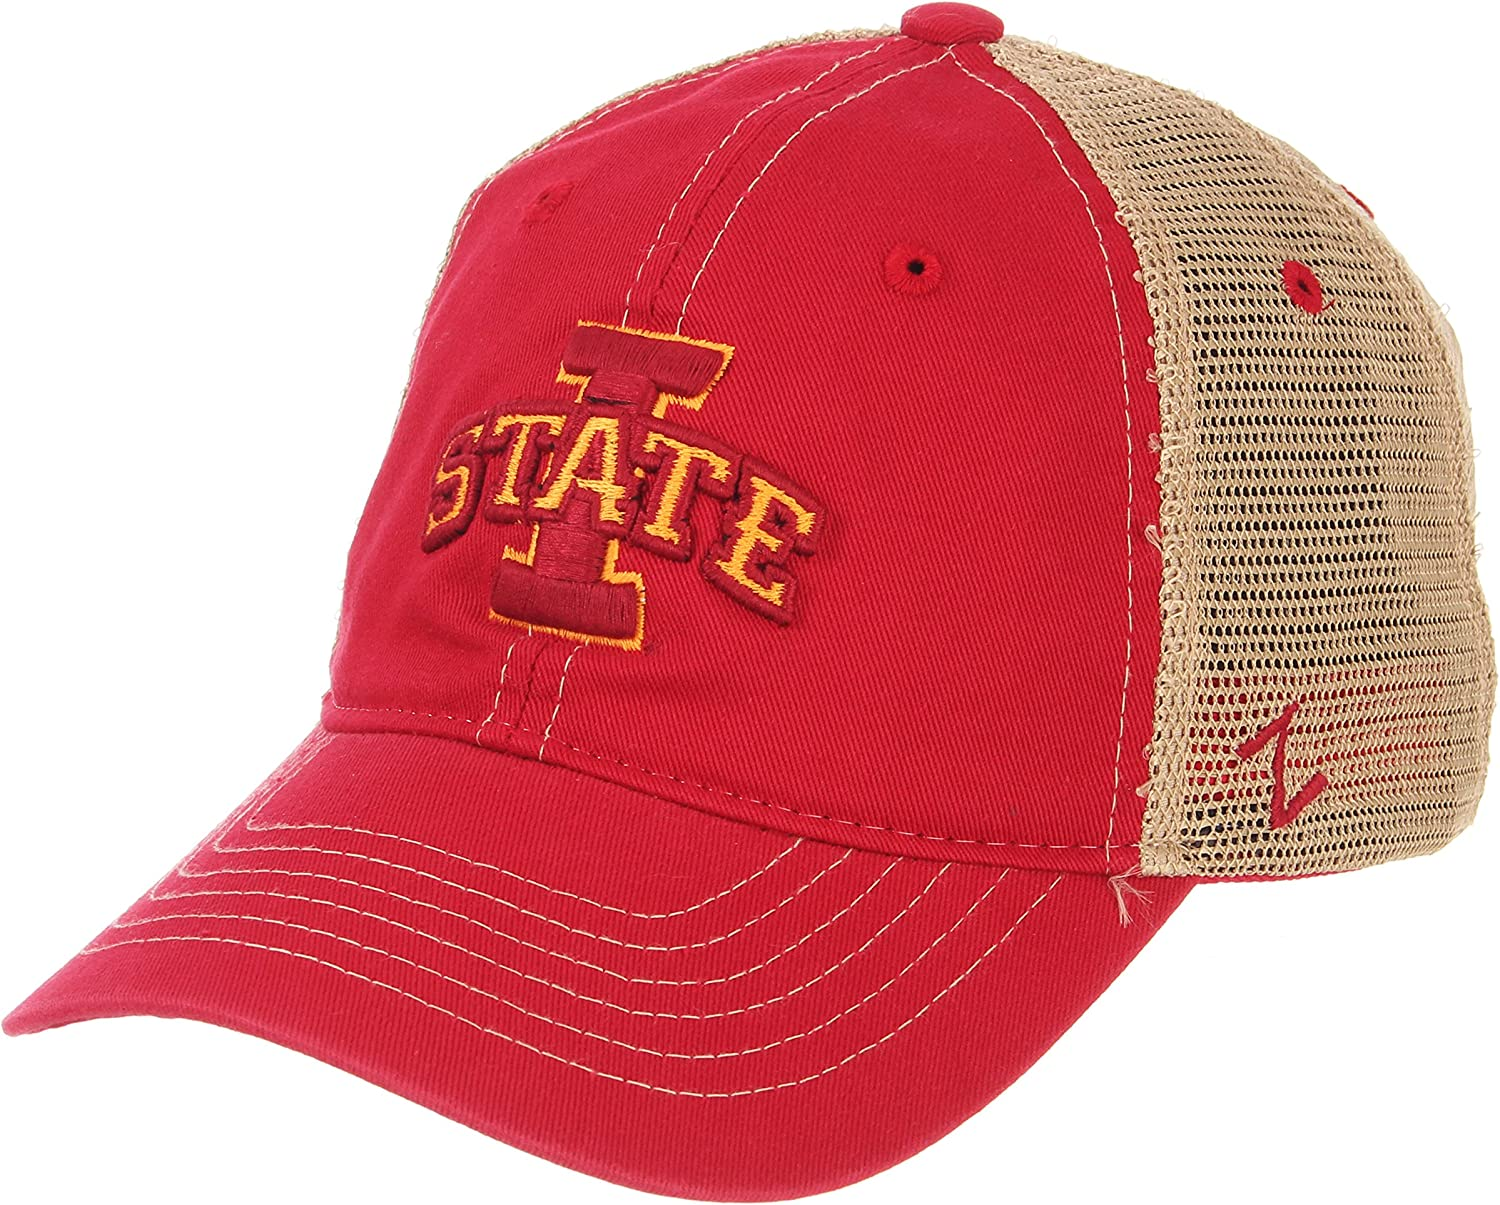 Zephyr NCAA Mens Threepeat Relaxed Cap